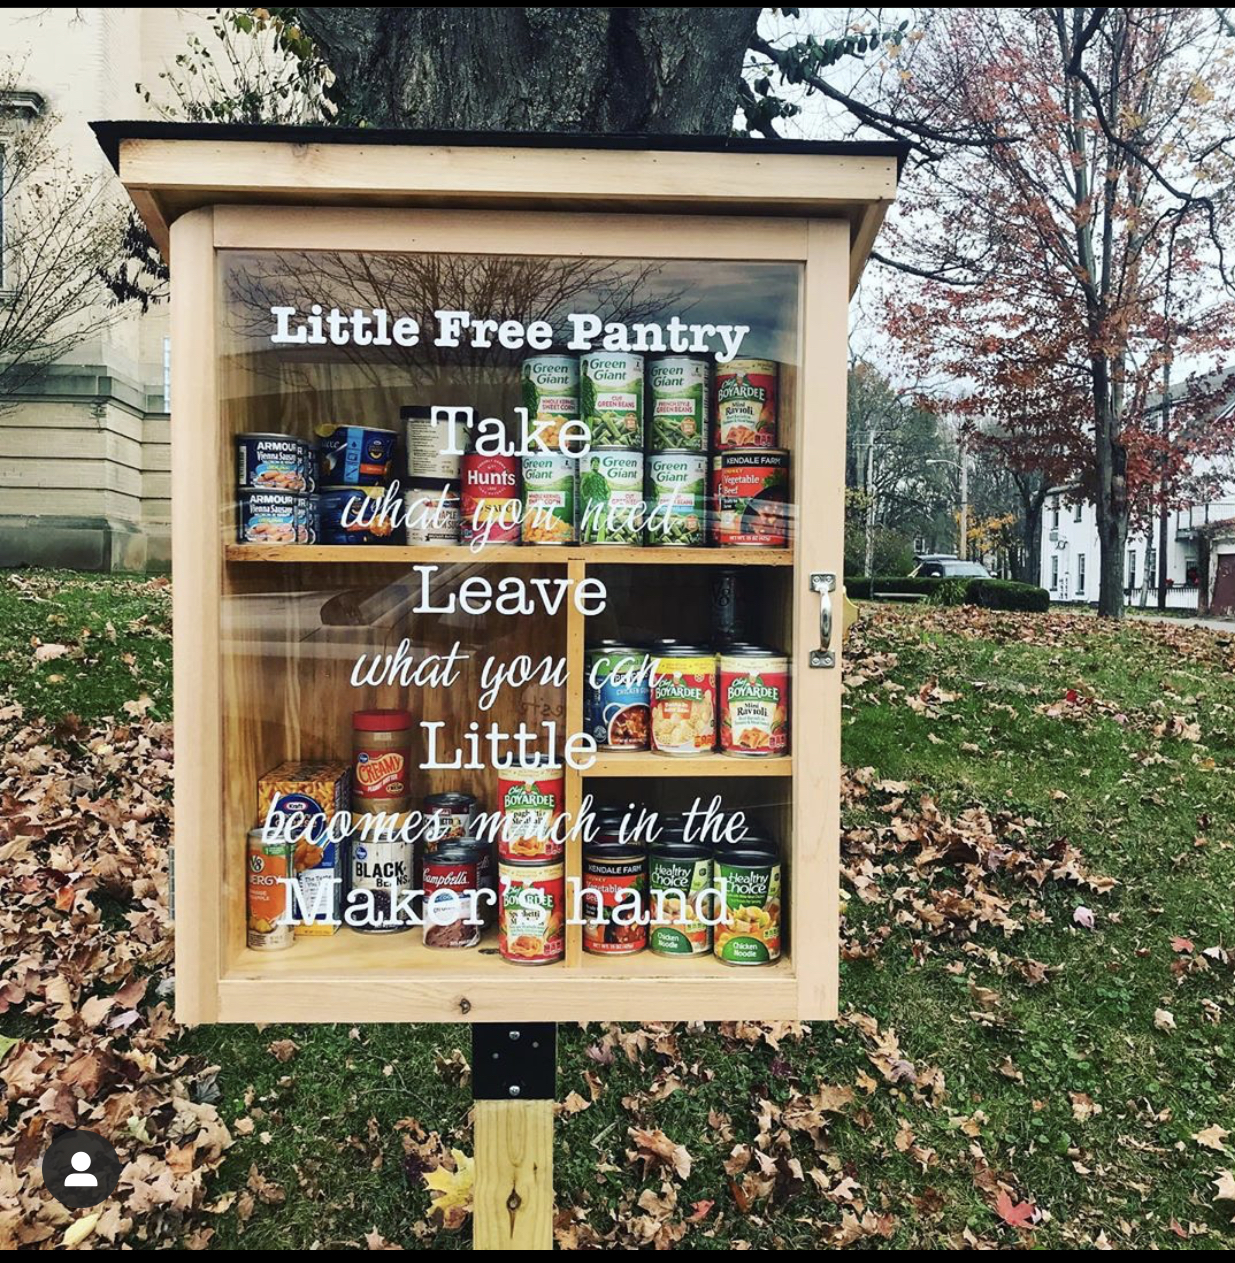 First Christian Church (Disciples of Christ) Little Free Pantry Photo 2